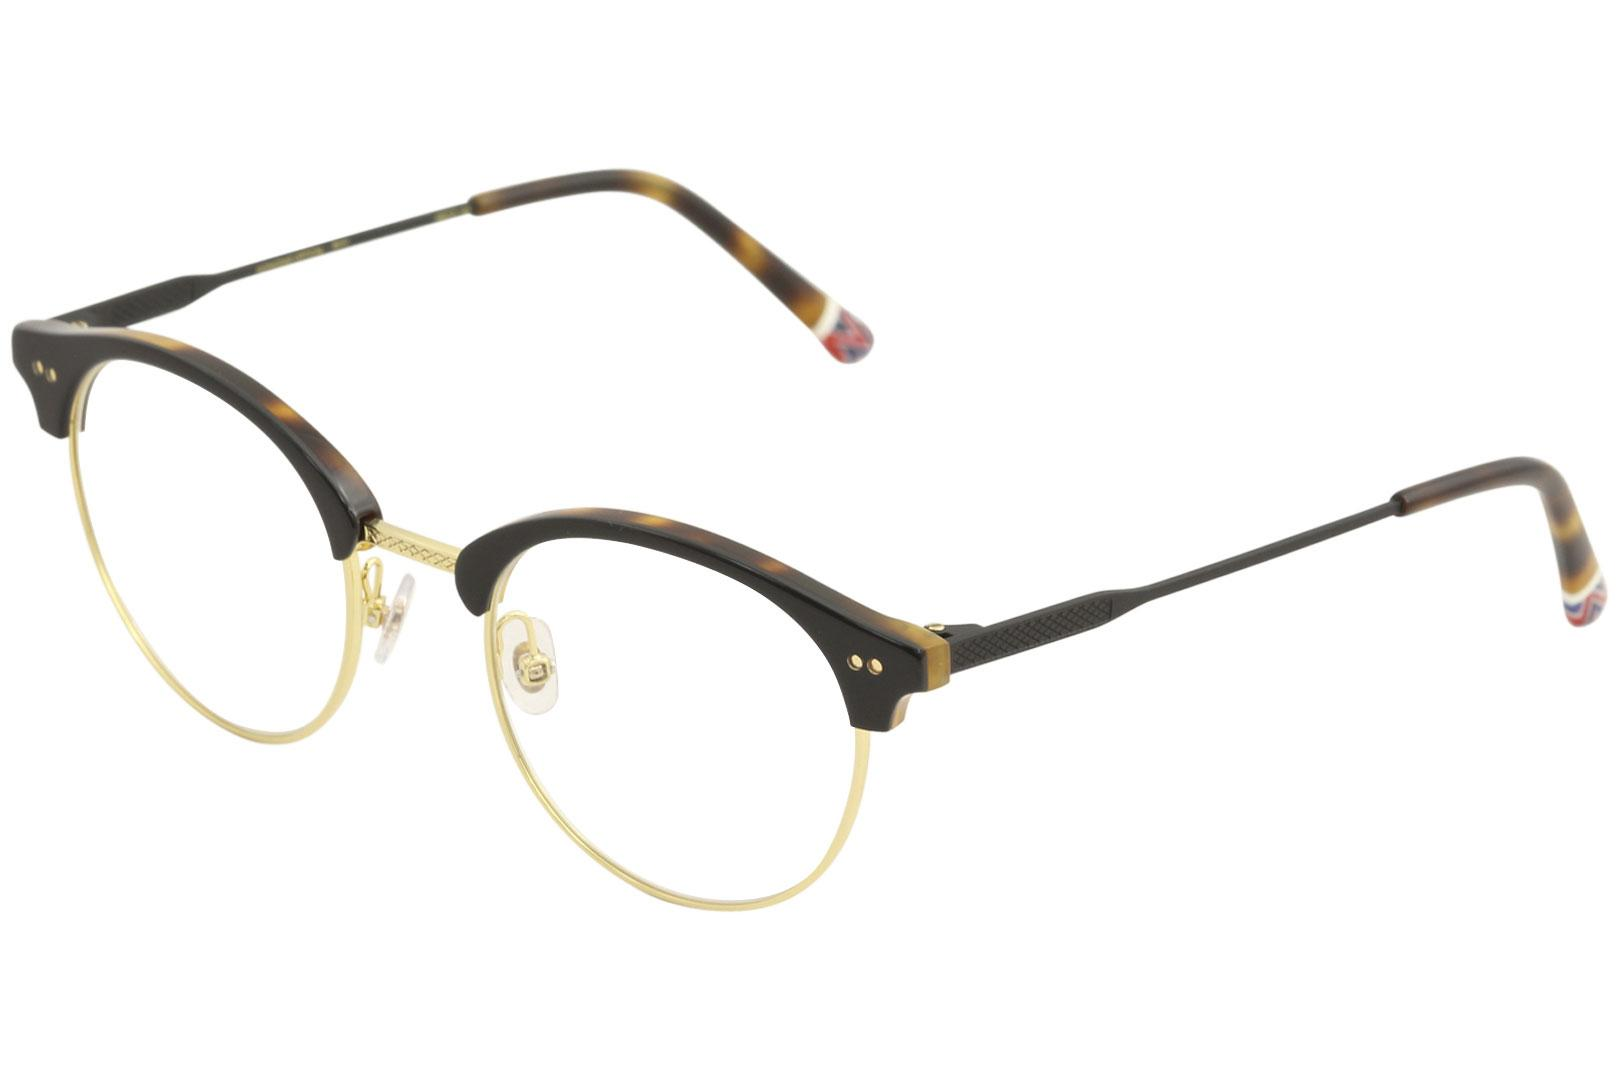 Image of Etnia Barcelona Men's Eyeglasses Vintage Collection Hongdae Optical Frame - Black - Lens 49 Bridge 21 Temple 145mm